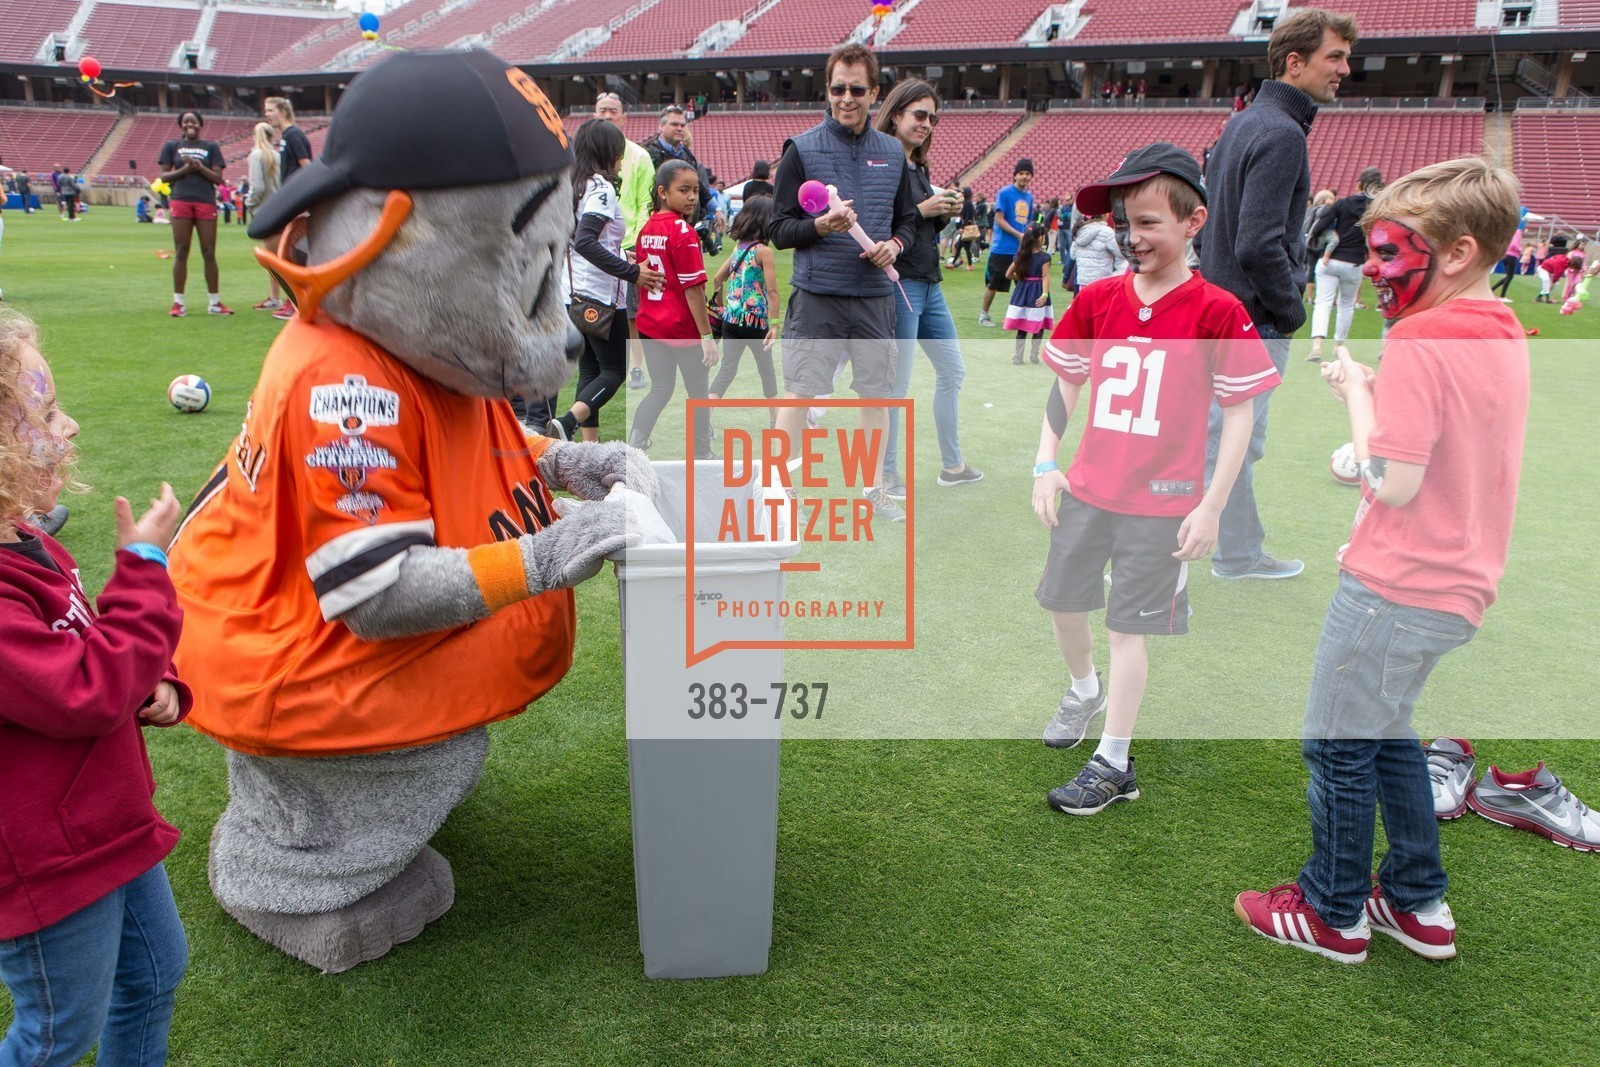 Atmosphere, Children's Champions, US, May 17th, 2015,Drew Altizer, Drew Altizer Photography, full-service event agency, private events, San Francisco photographer, photographer California